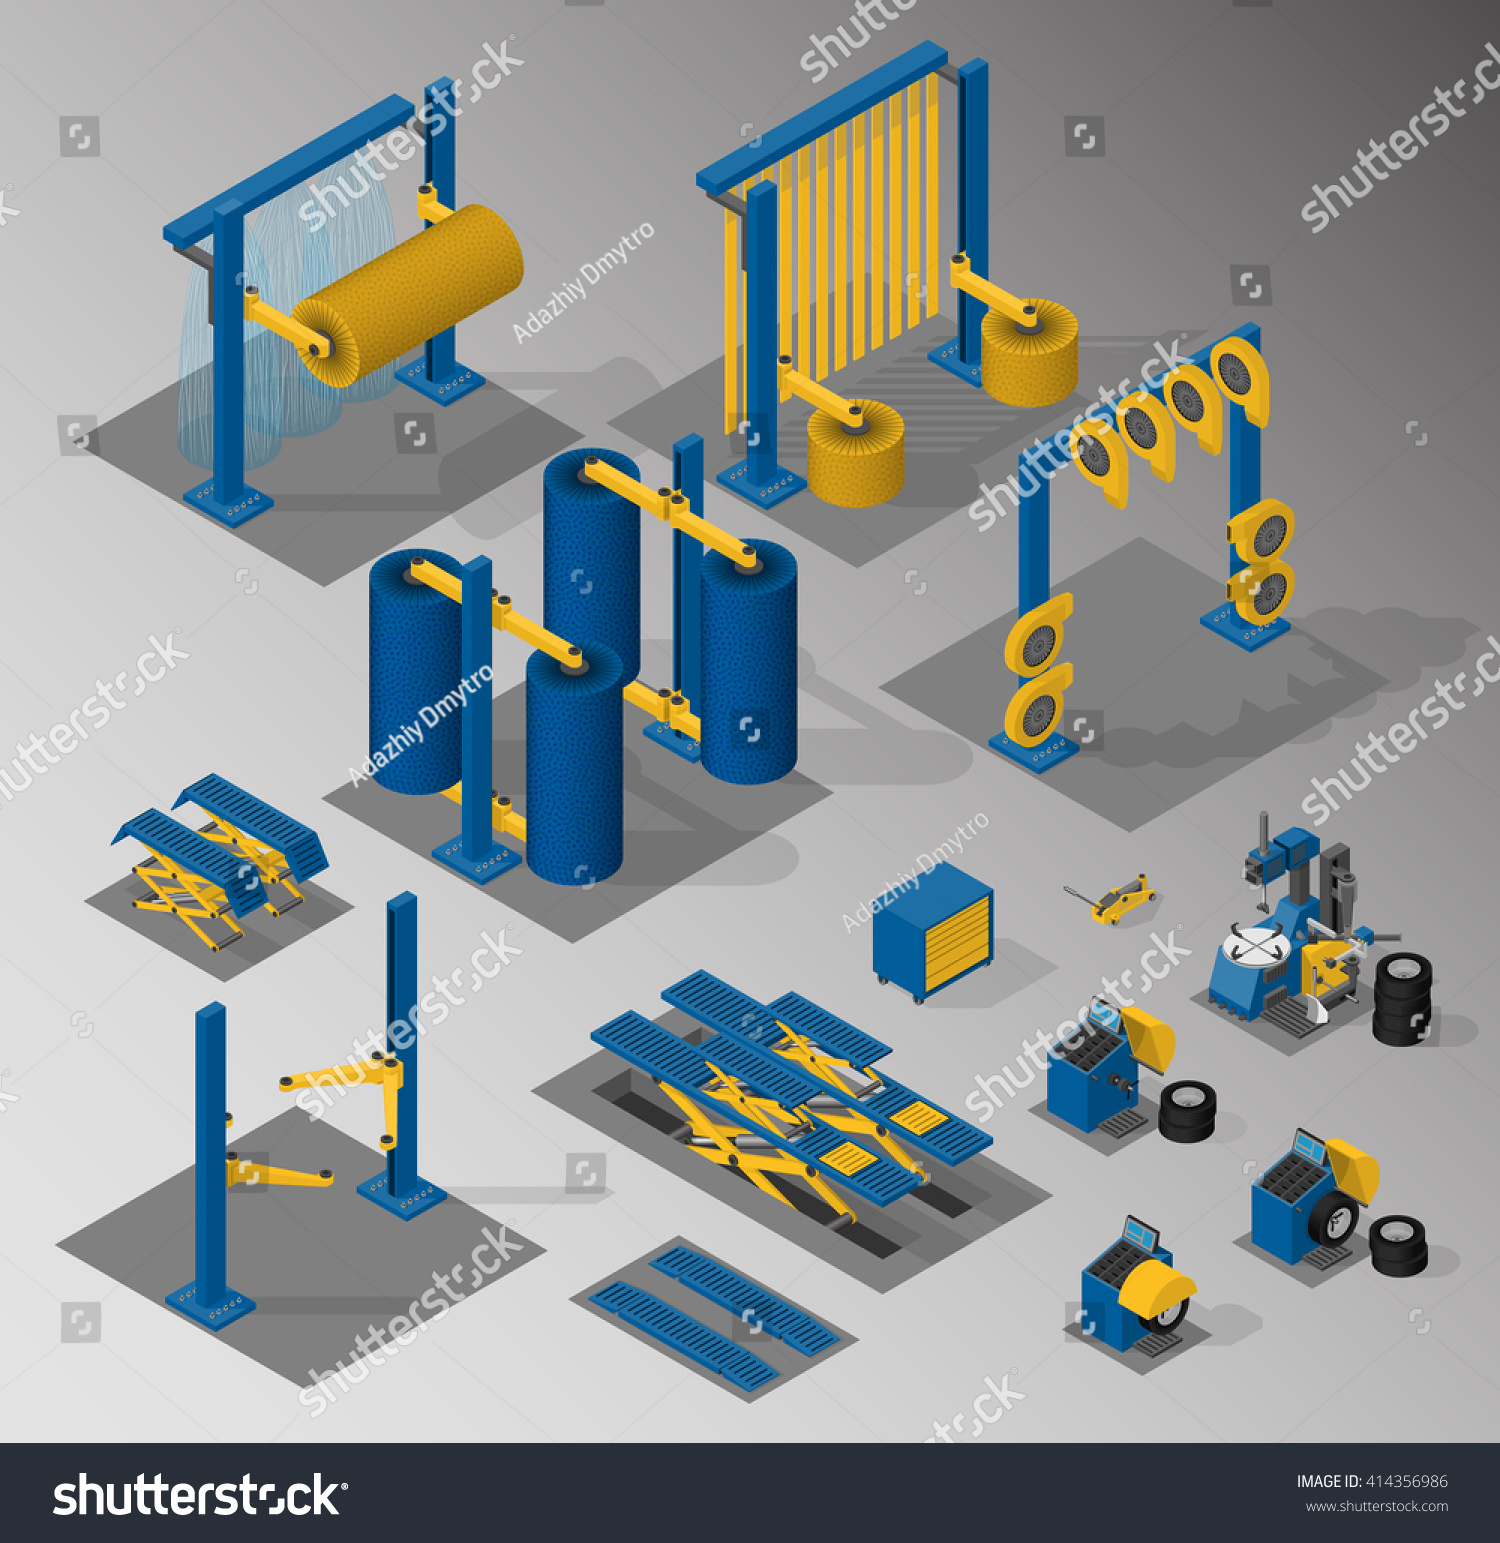 hight resolution of set of equipment for car service and car wash vector isometric illustration